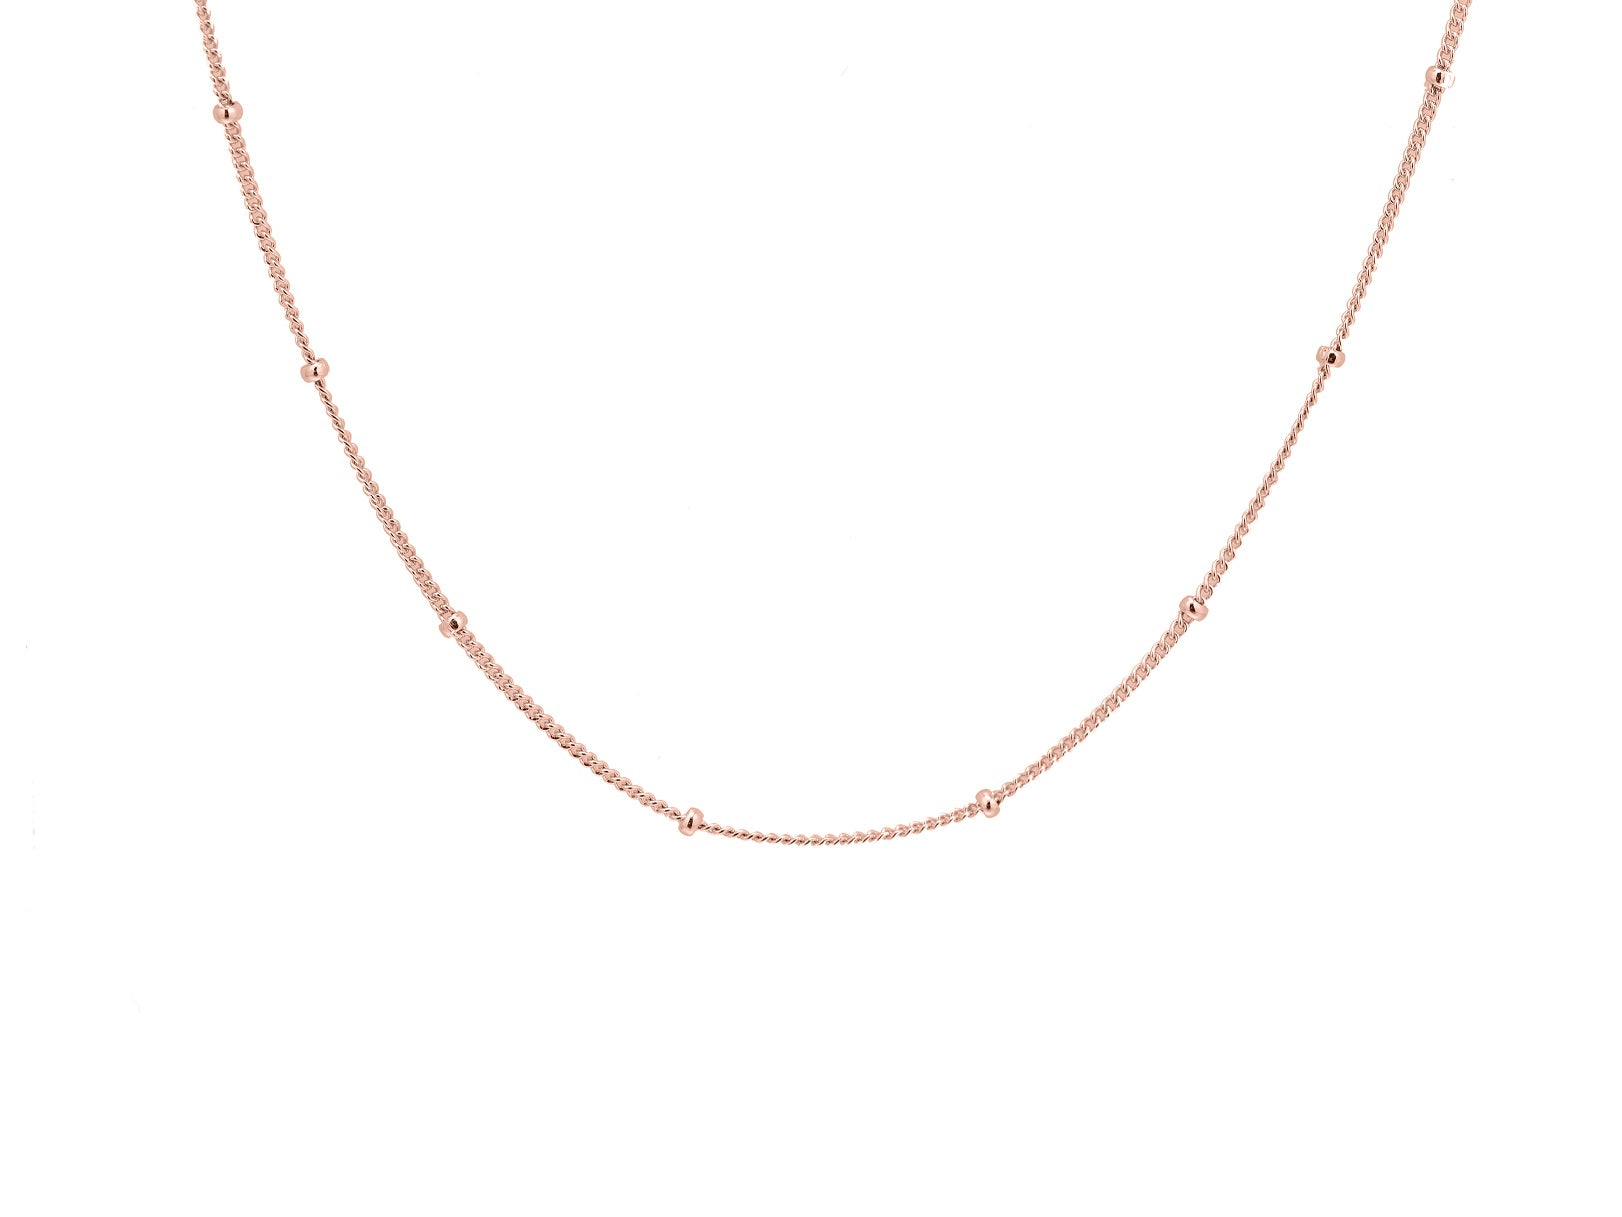 Bobble chain, sterling silver, rose gold plated